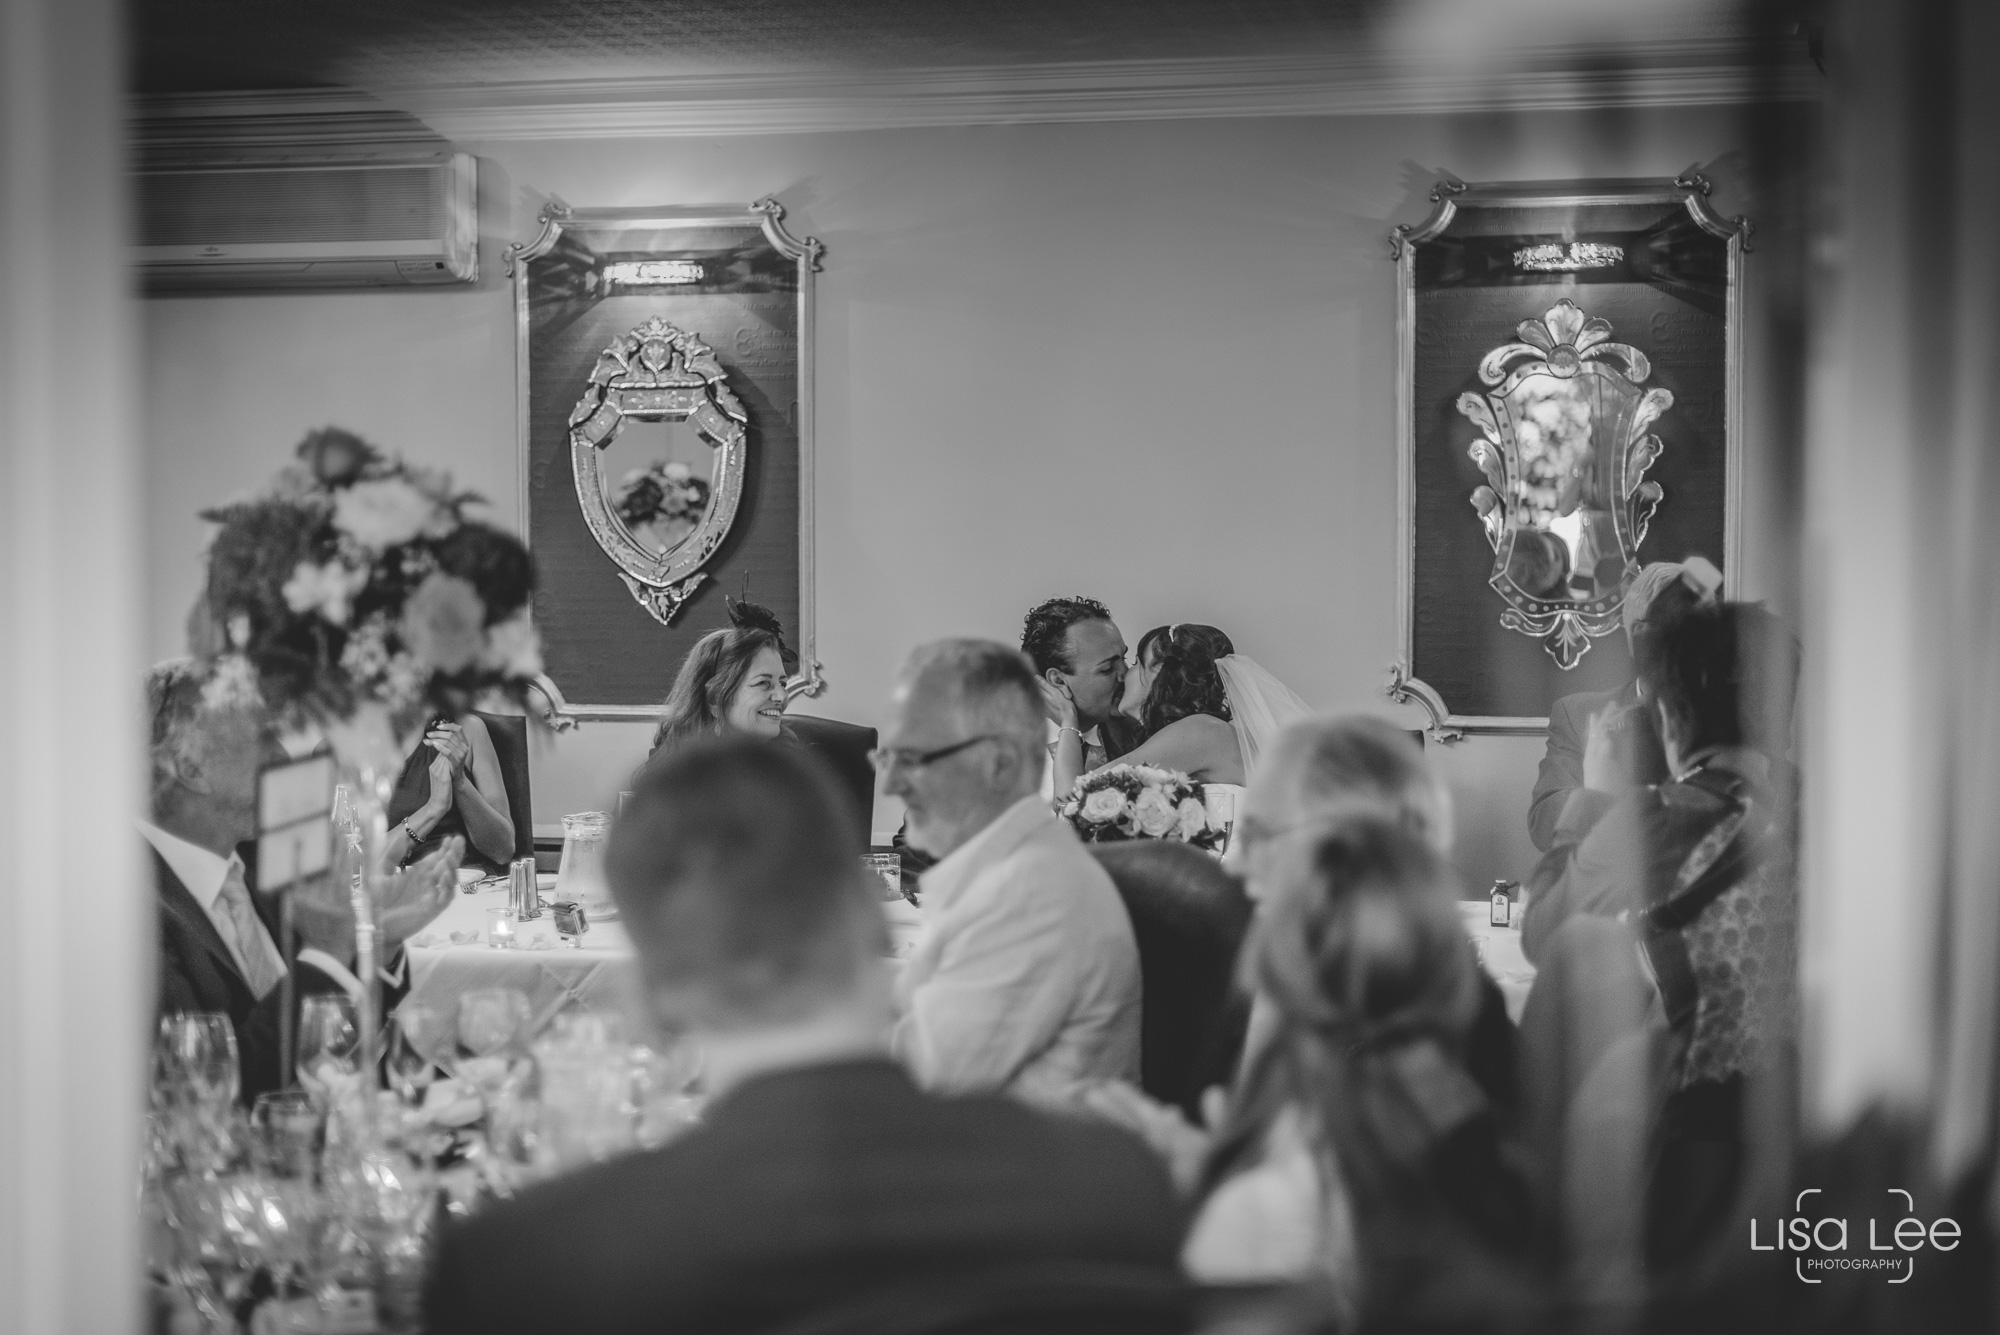 Lord-Bute-Hotel-Lisa-Lee-Documentary-Wedding-Photography-6.jpg